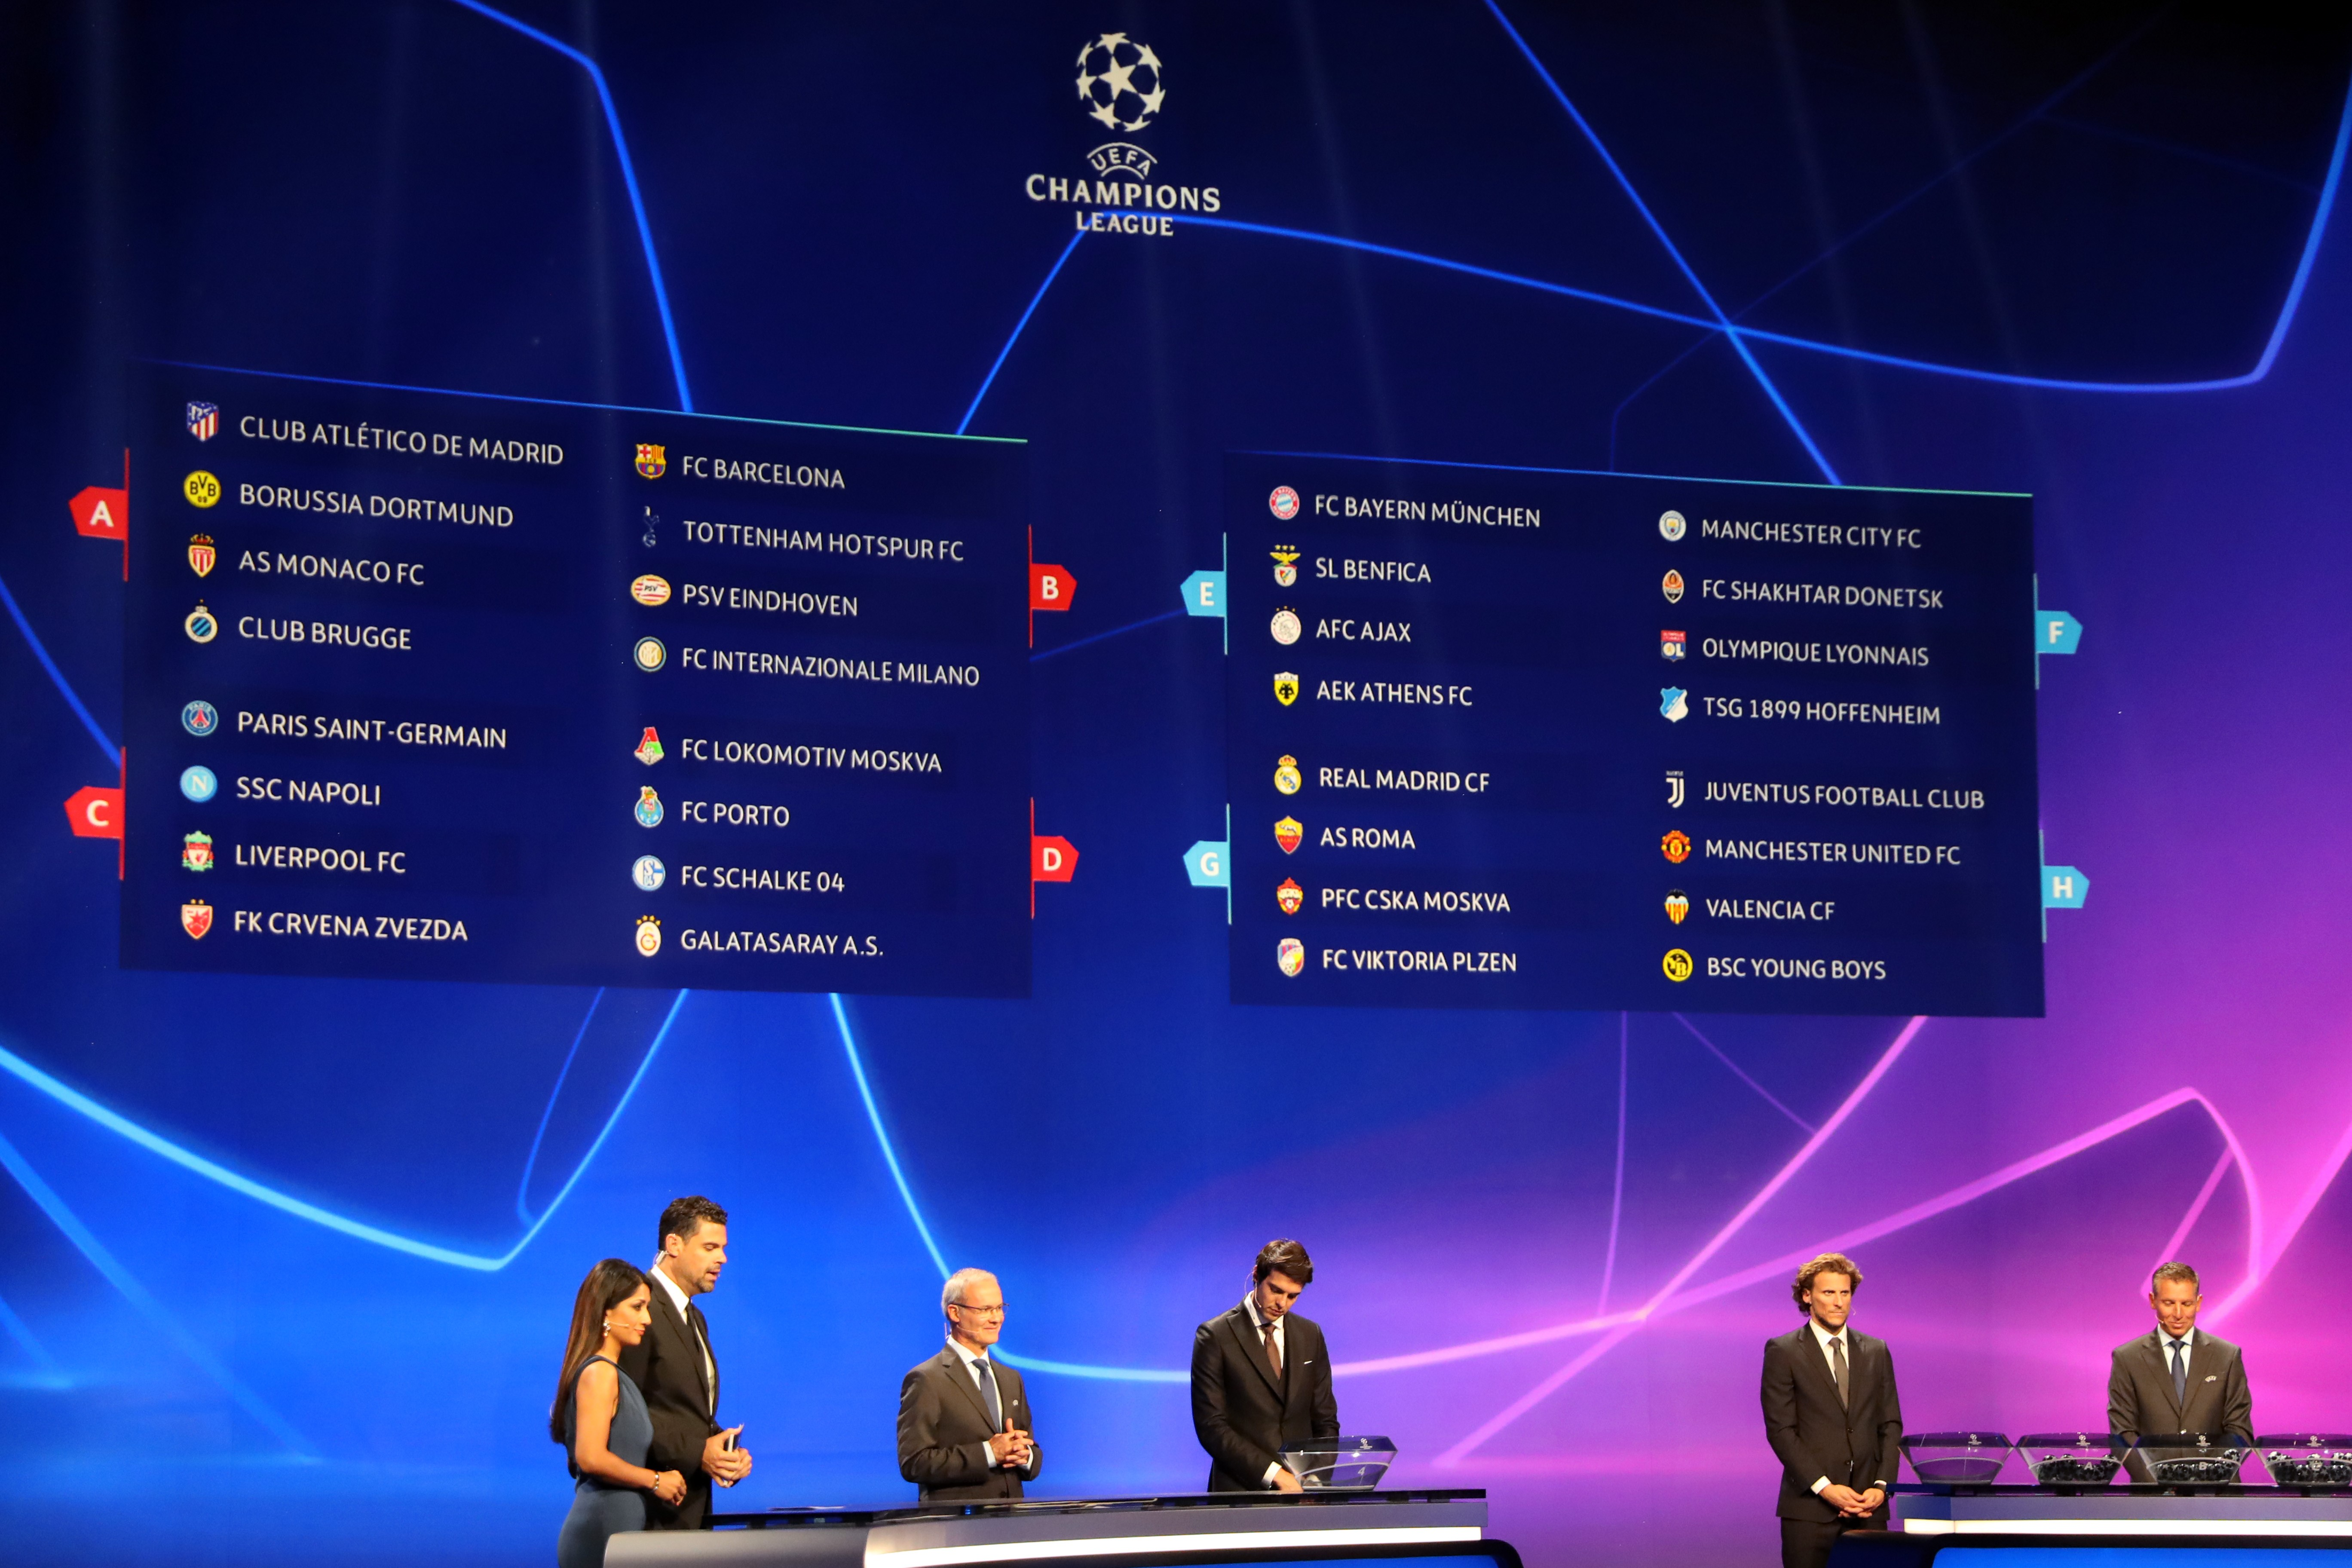 Champions League: Draw